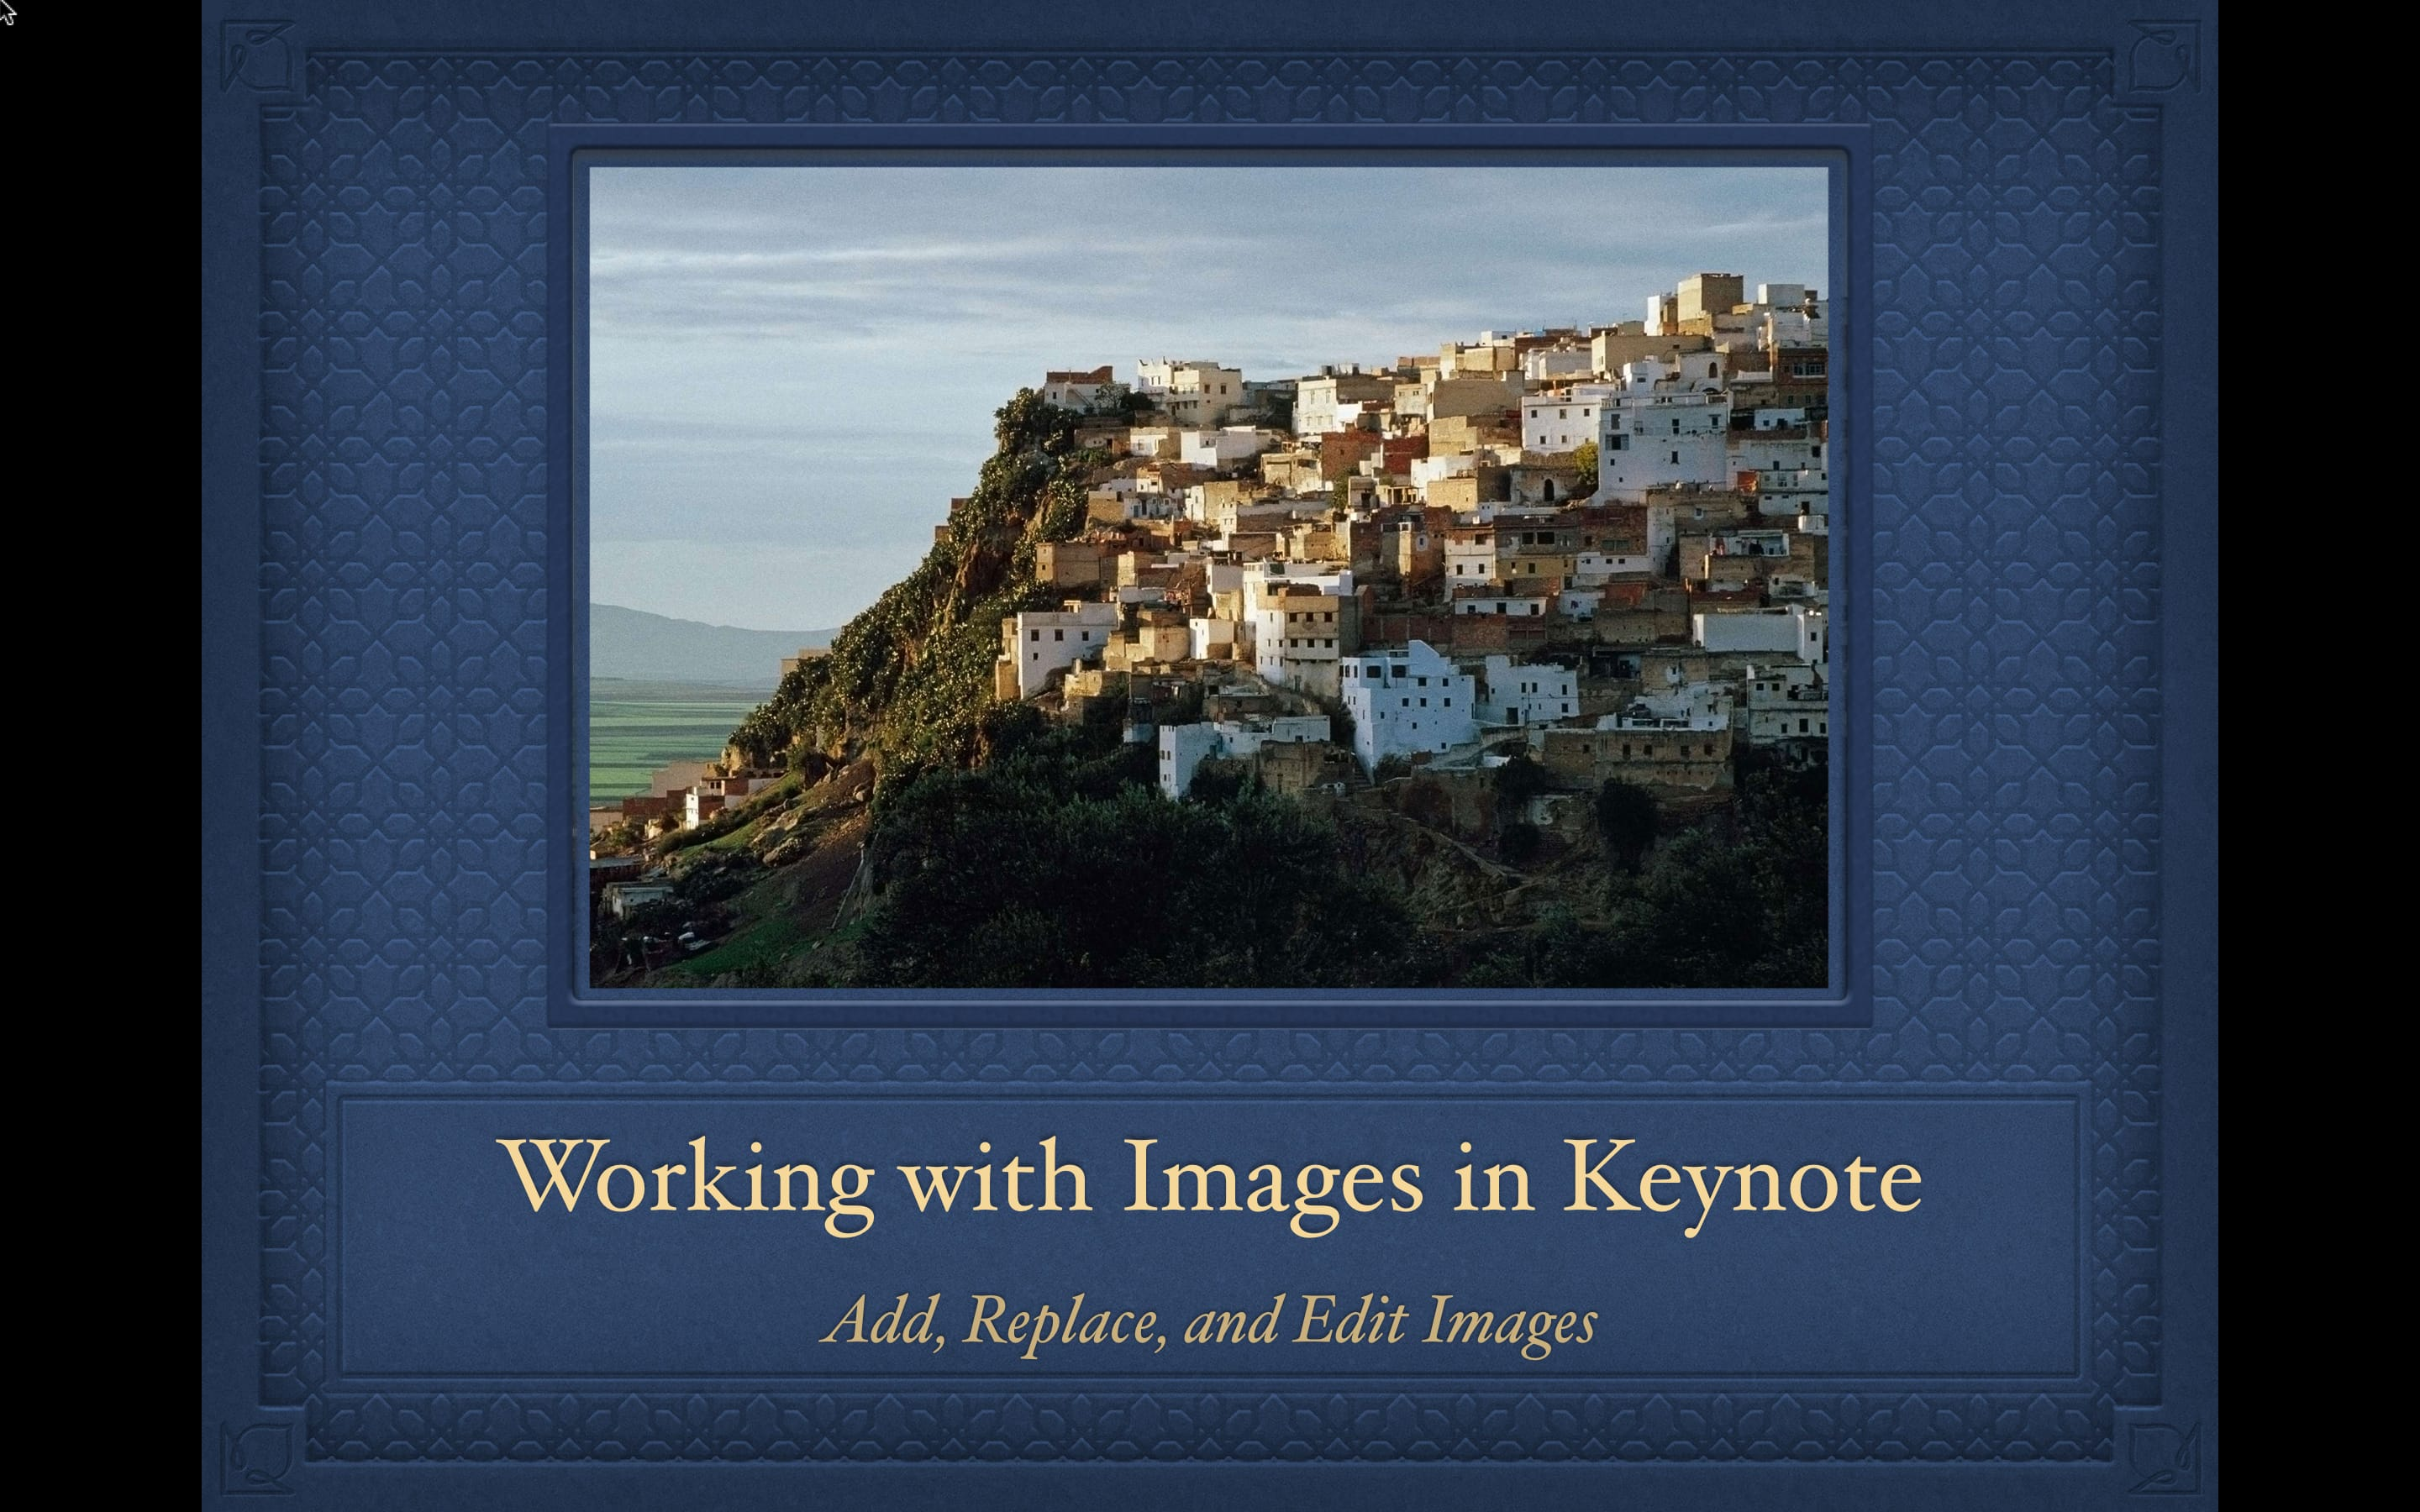 How to work with images in Keynote presentations on Mac